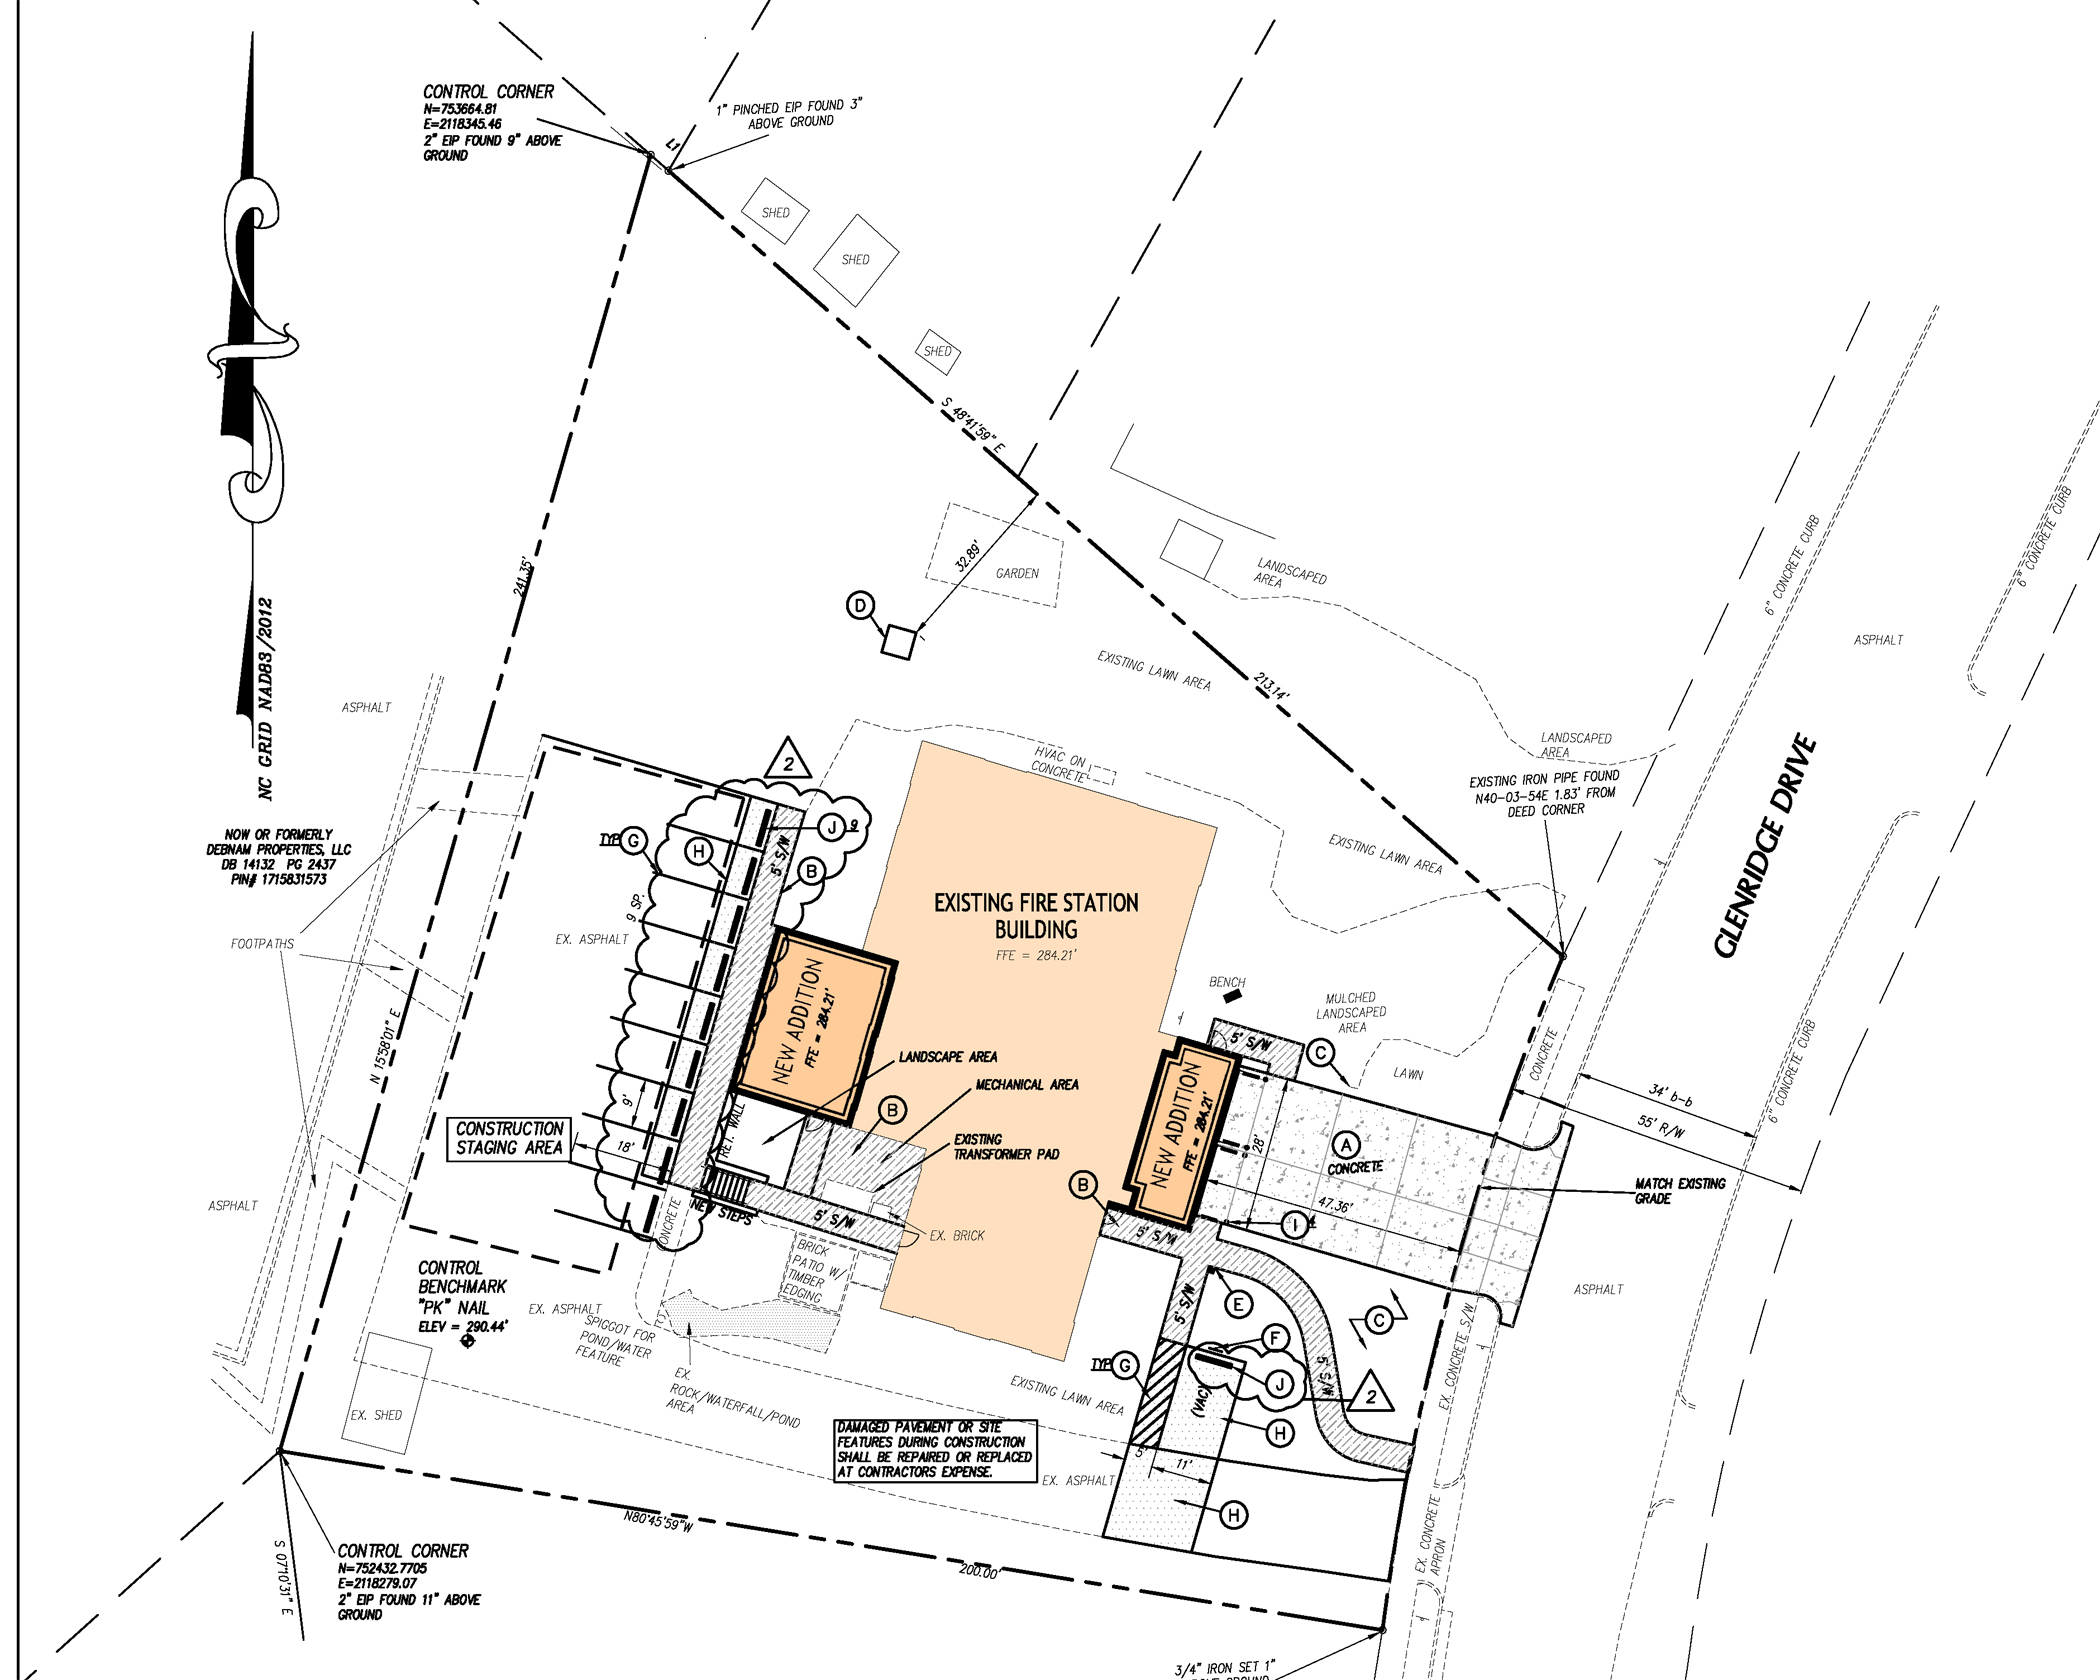 2018-10-12-sta11-renovation-site-plan